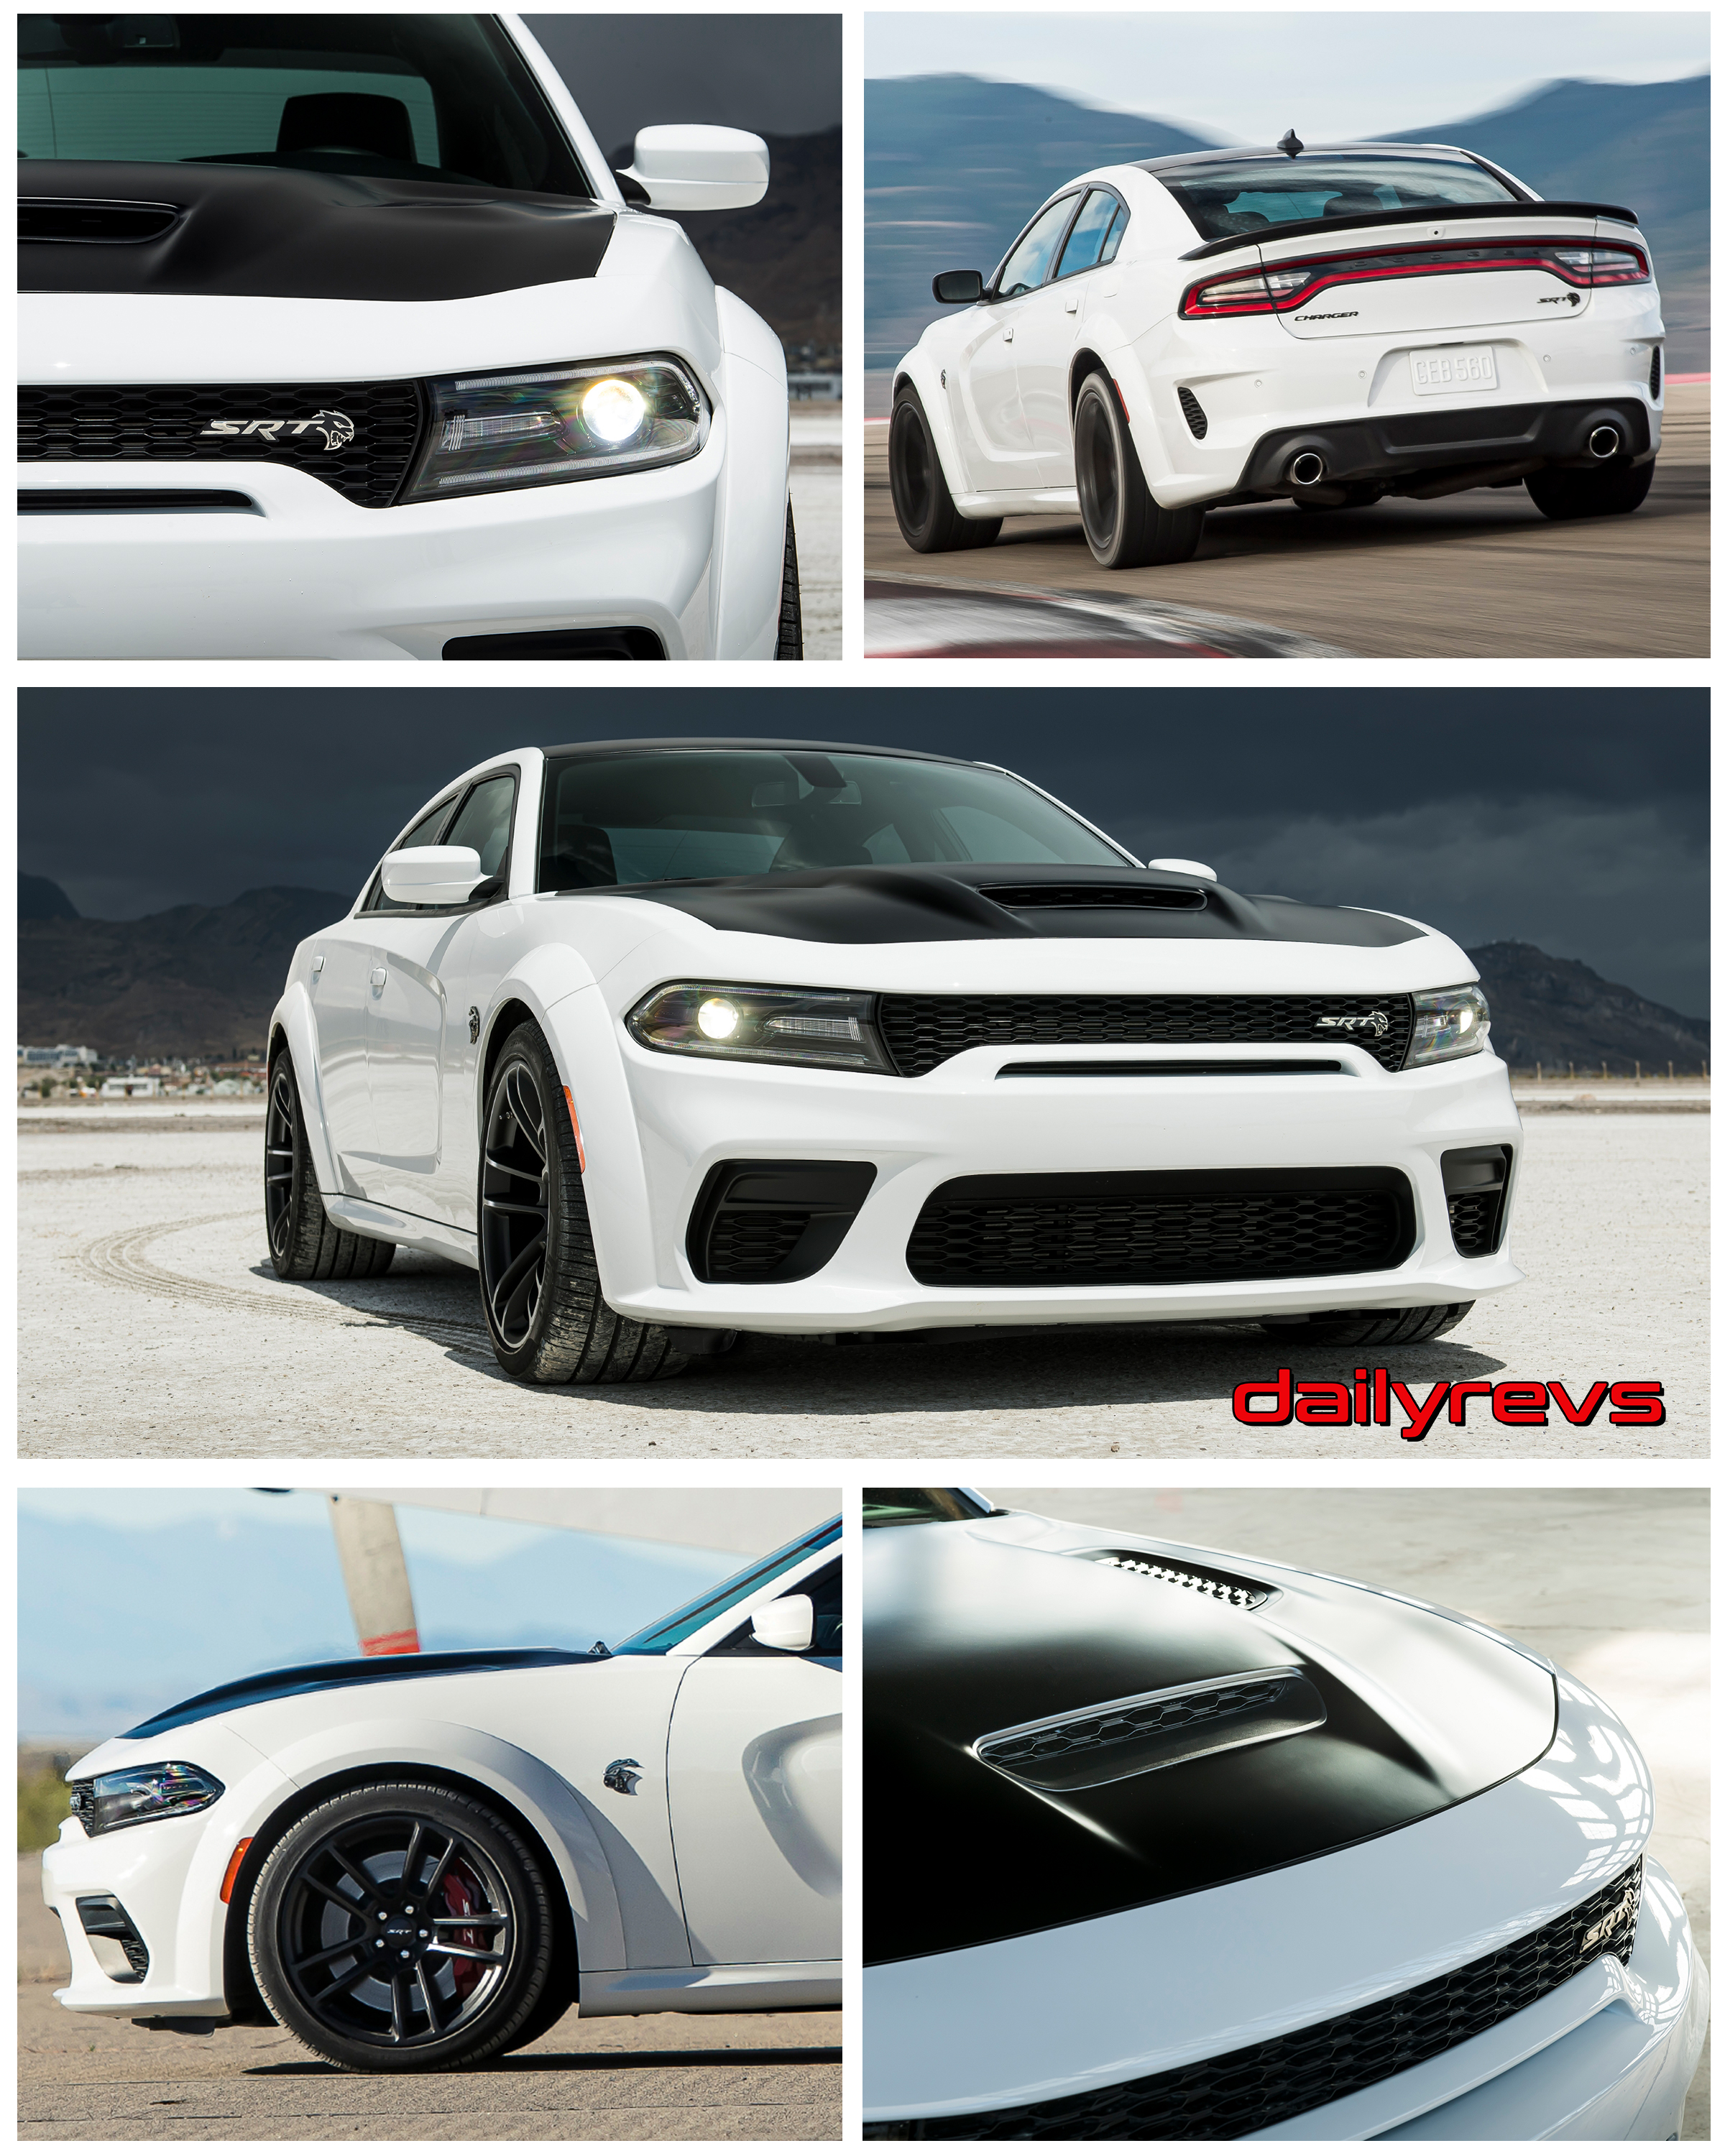 2021 Dodge Charger Srt Hellcat Redeye Dailyrevs